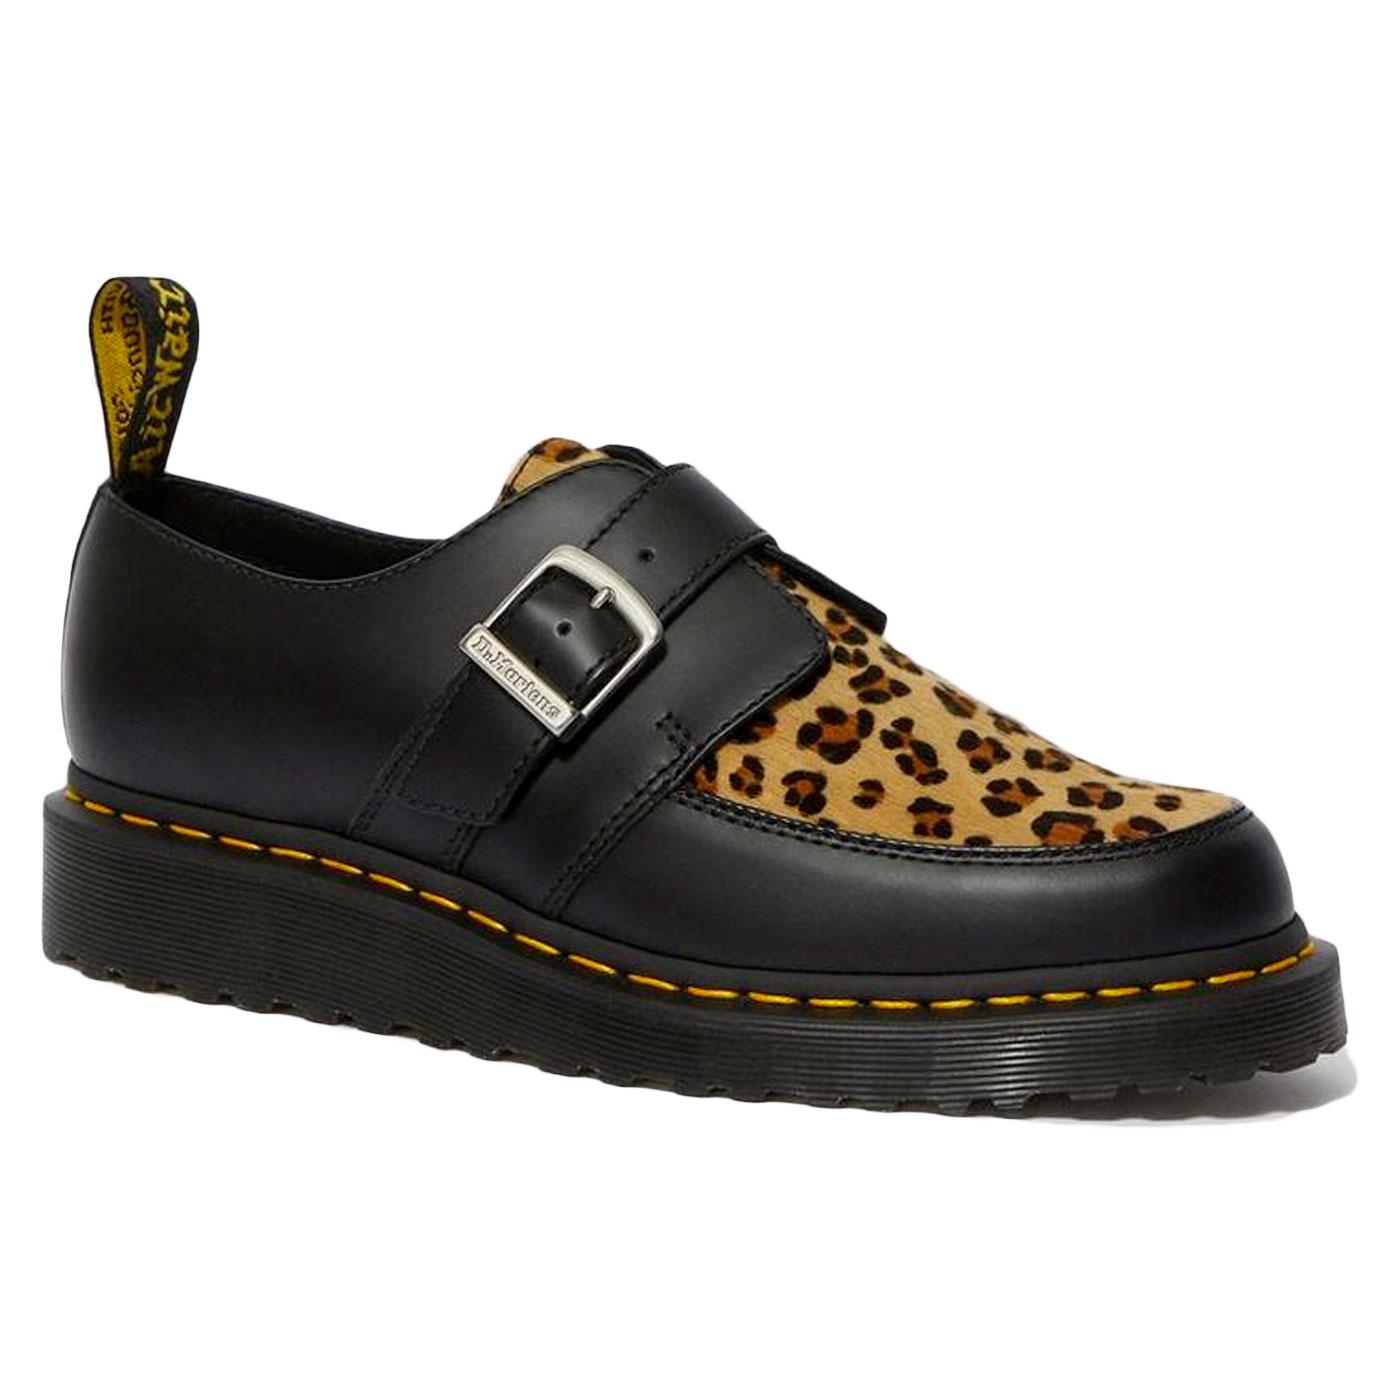 Ramsey Monk DR MARTENS Leopard Print Creepers